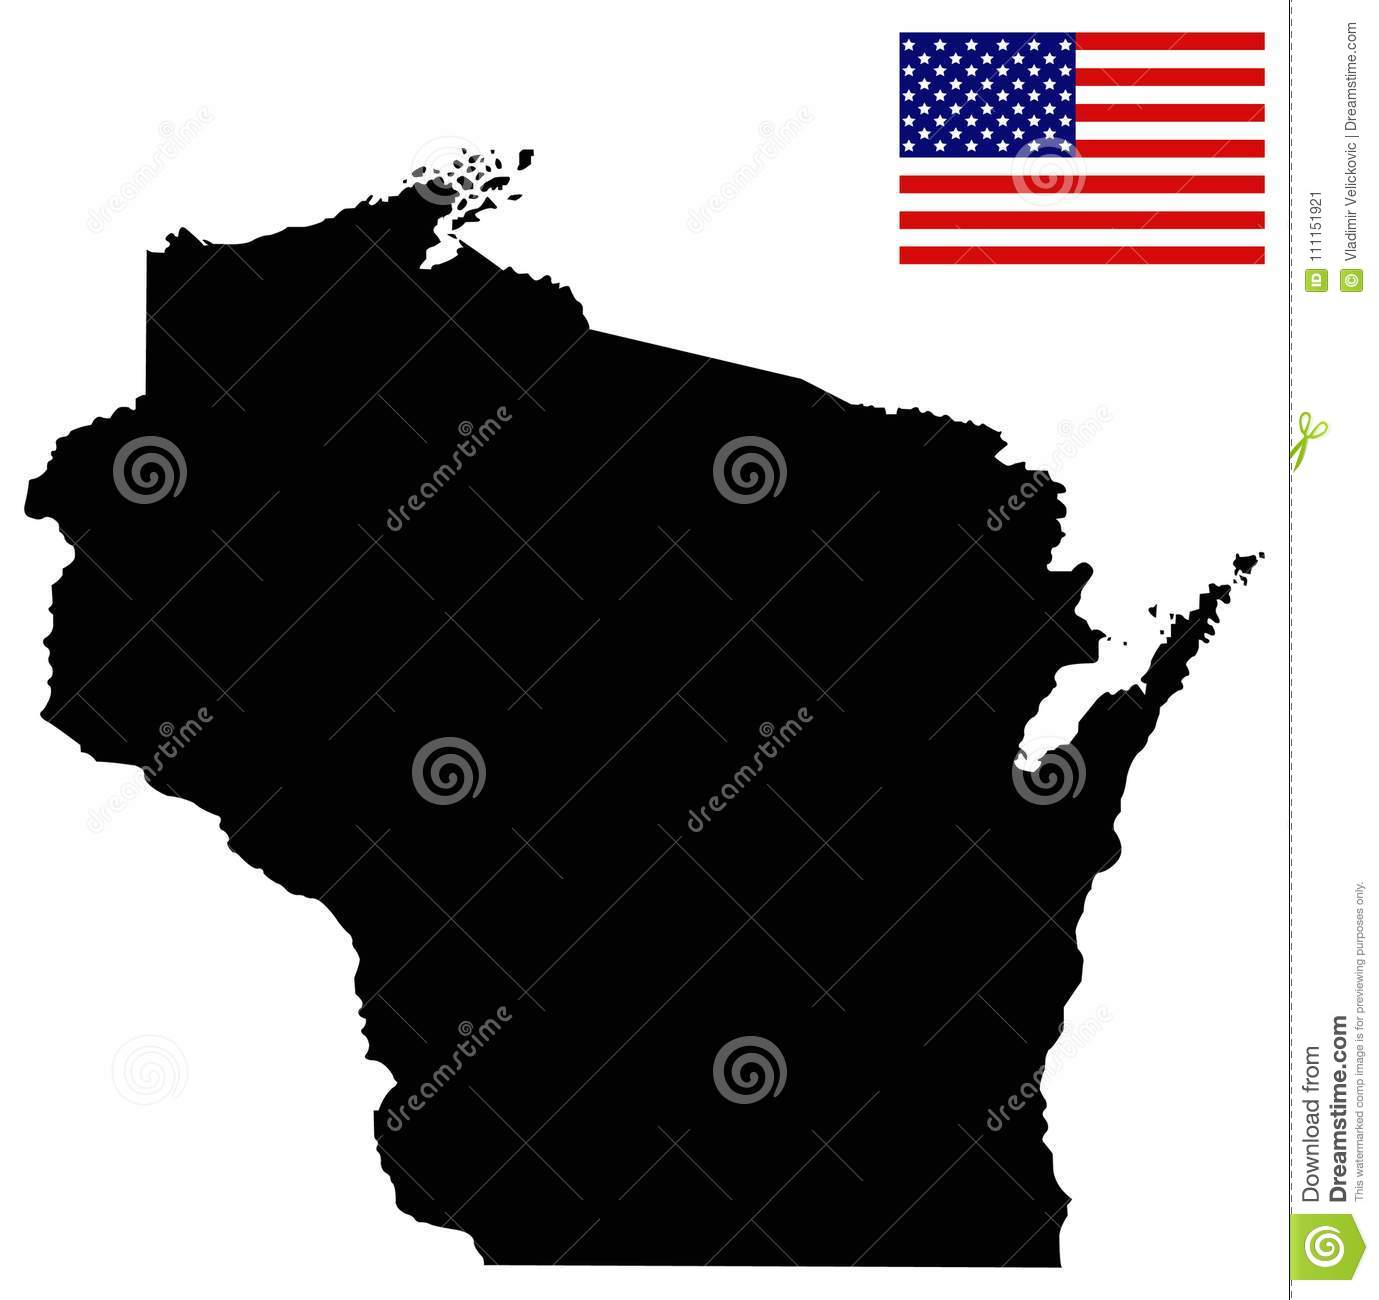 Wisconsin Map With USA Flag - State In The North-central United ...